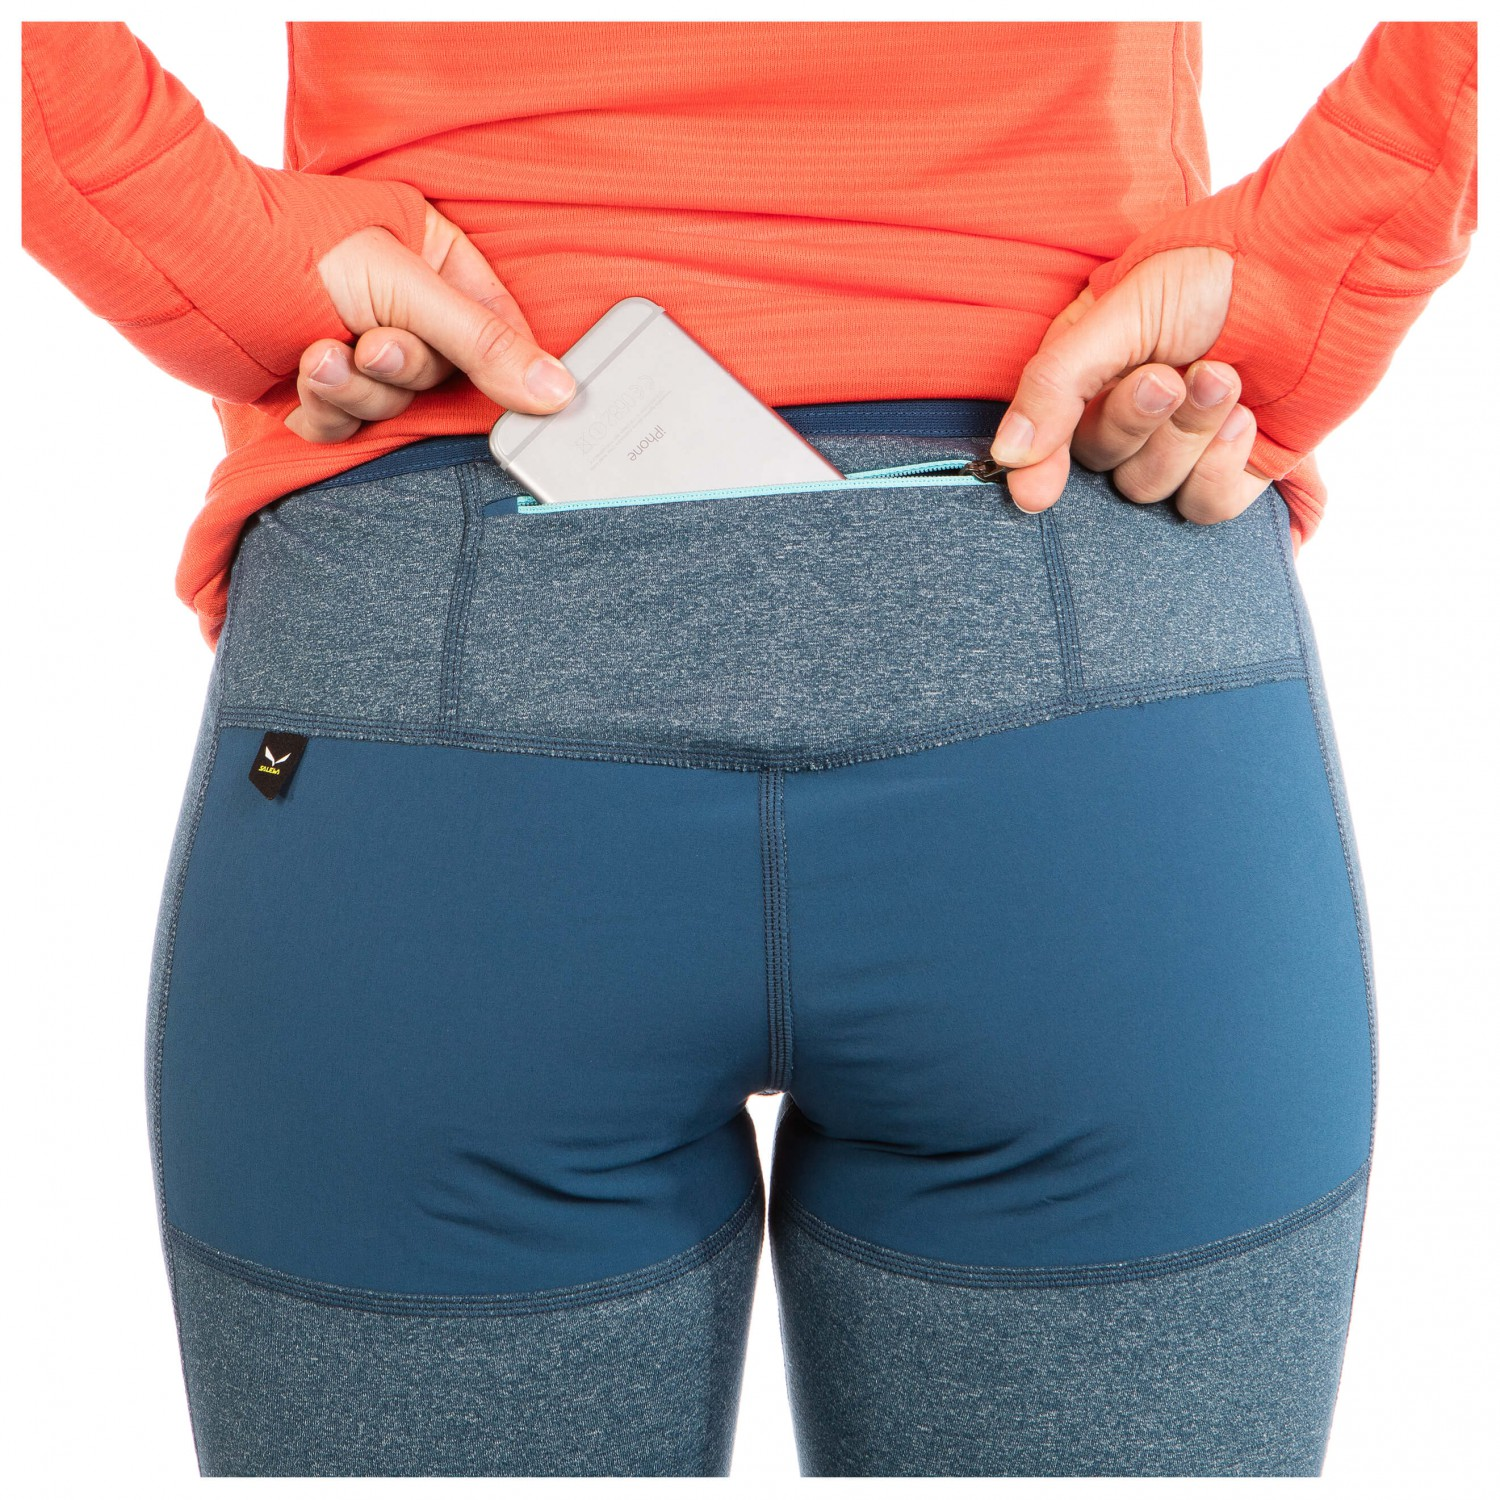 Shop for Women's Running Pants and Tights at REI - FREE SHIPPING With $50 minimum purchase. Top quality, great selection and expert advice you can trust. % Satisfaction Guarantee. Winter Warm Mid-Rise Tights - Women's. $